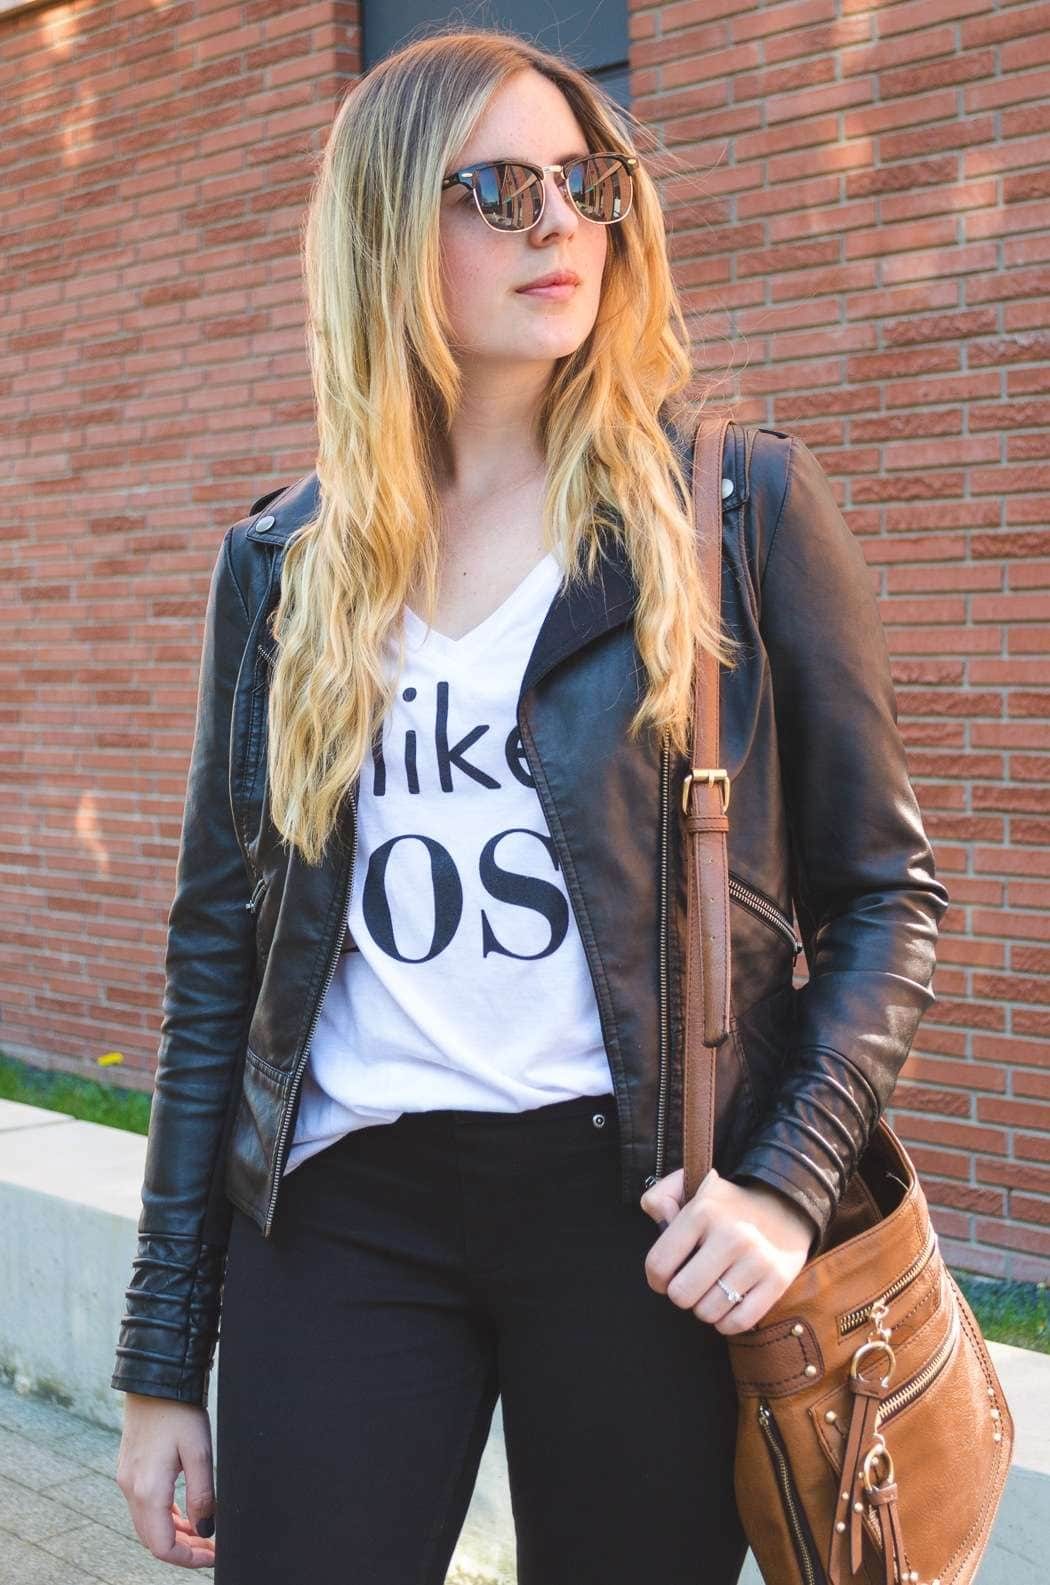 vancouver style blog, vancouver fashion blog,vancouver blog, vancouver fashion bloggers, best vancouver fashion blog, fashion blog, vancouver style blogger, vancouver style bloggers, vancouver lifestyle blog, vancouver travel blog, canadian fashion blog, canadian style blog, canadian travel blog,popular fashion blog, popular style blog, bree aylwin, fashion styles, vancouver fashion blogger, top fashion blogs, popular fashion blogs, top style blogs, style tips, things to do in amsterdam, free things to do in amsterdam, how to travel amsterdam, a guide to amsterdam, amsterdam travel